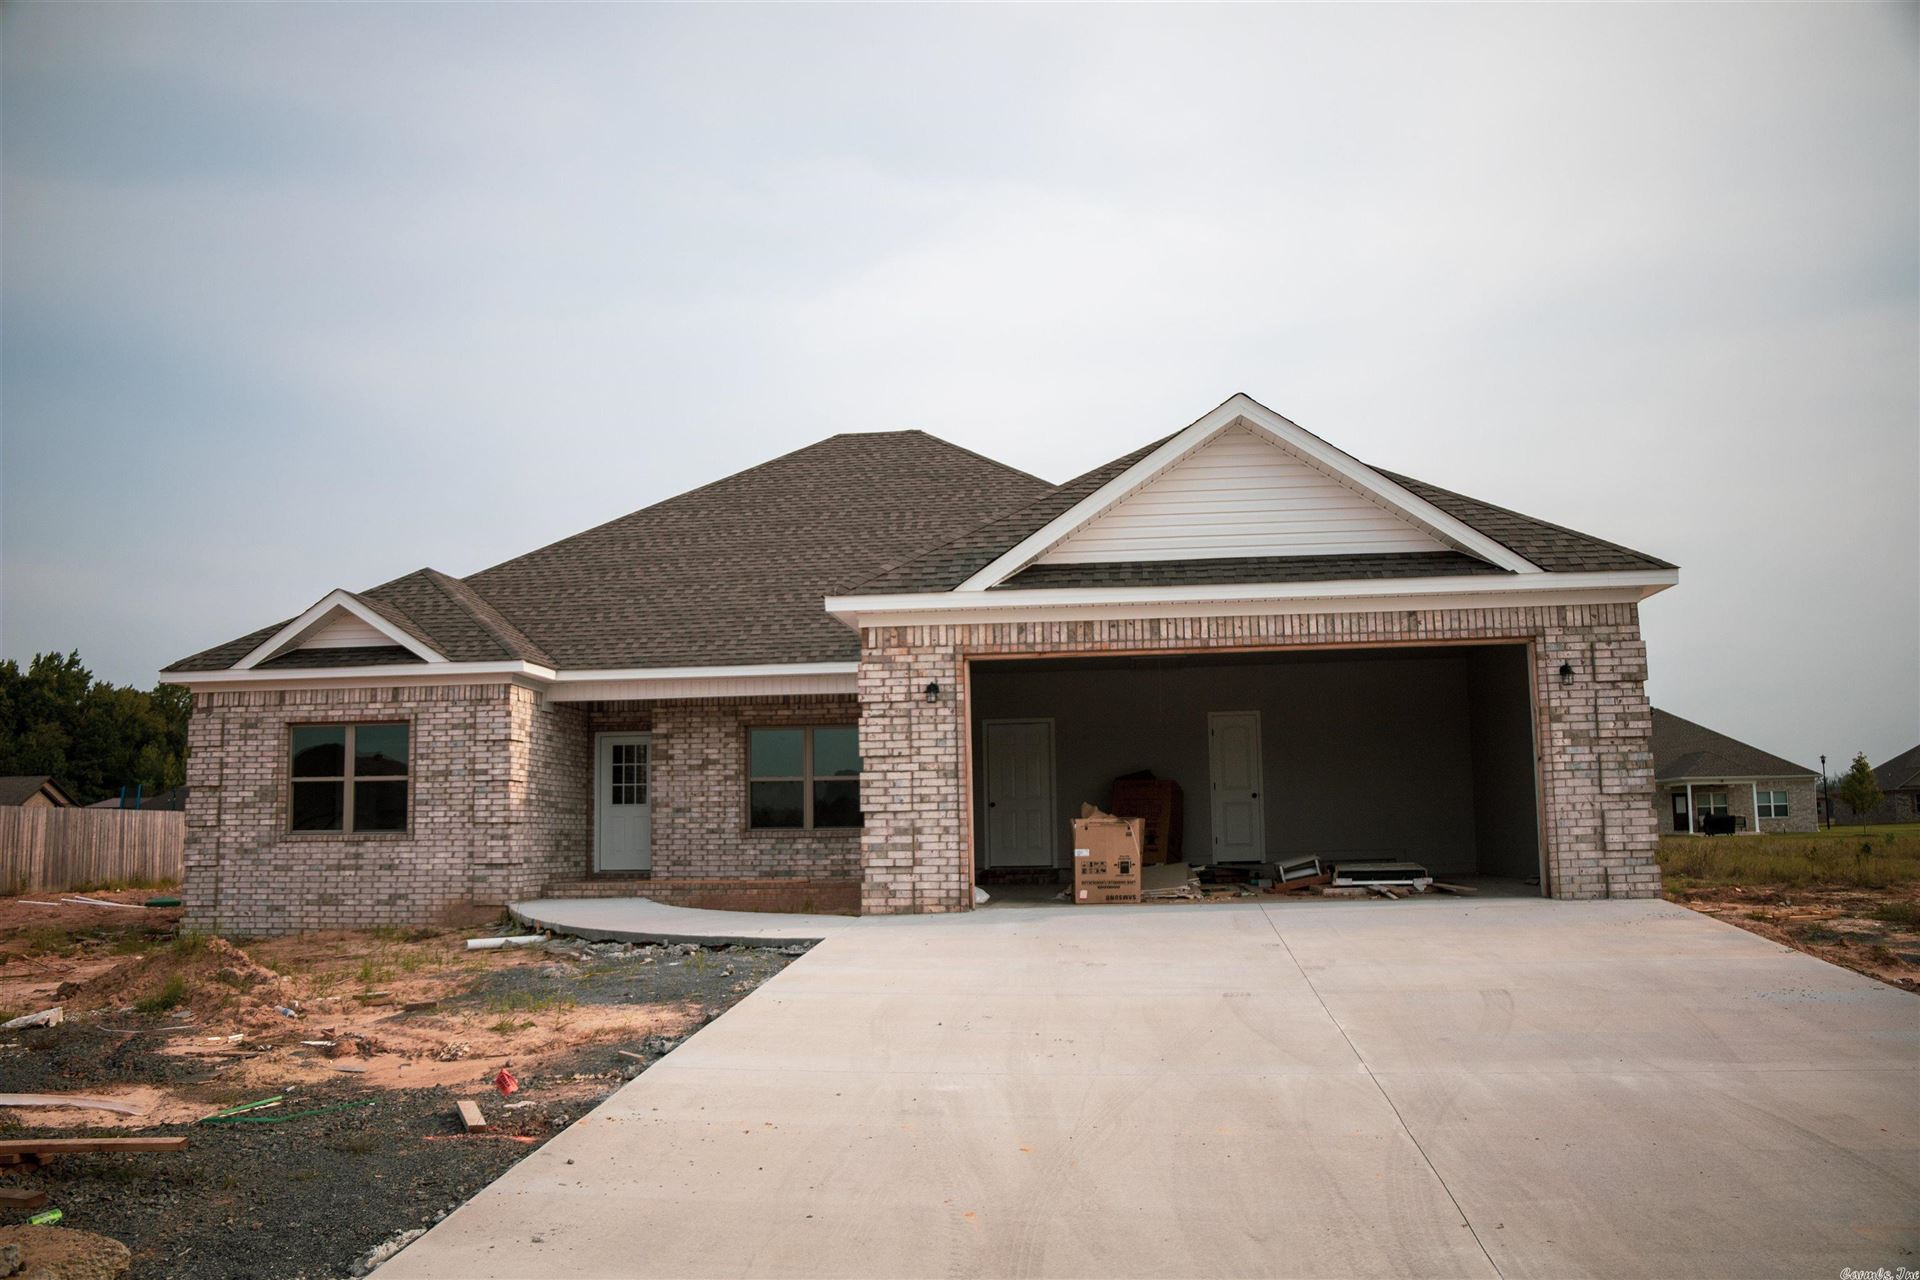 25 Mt Tabor West, Cabot, AR 72023-9999 - MLS#: 21024616